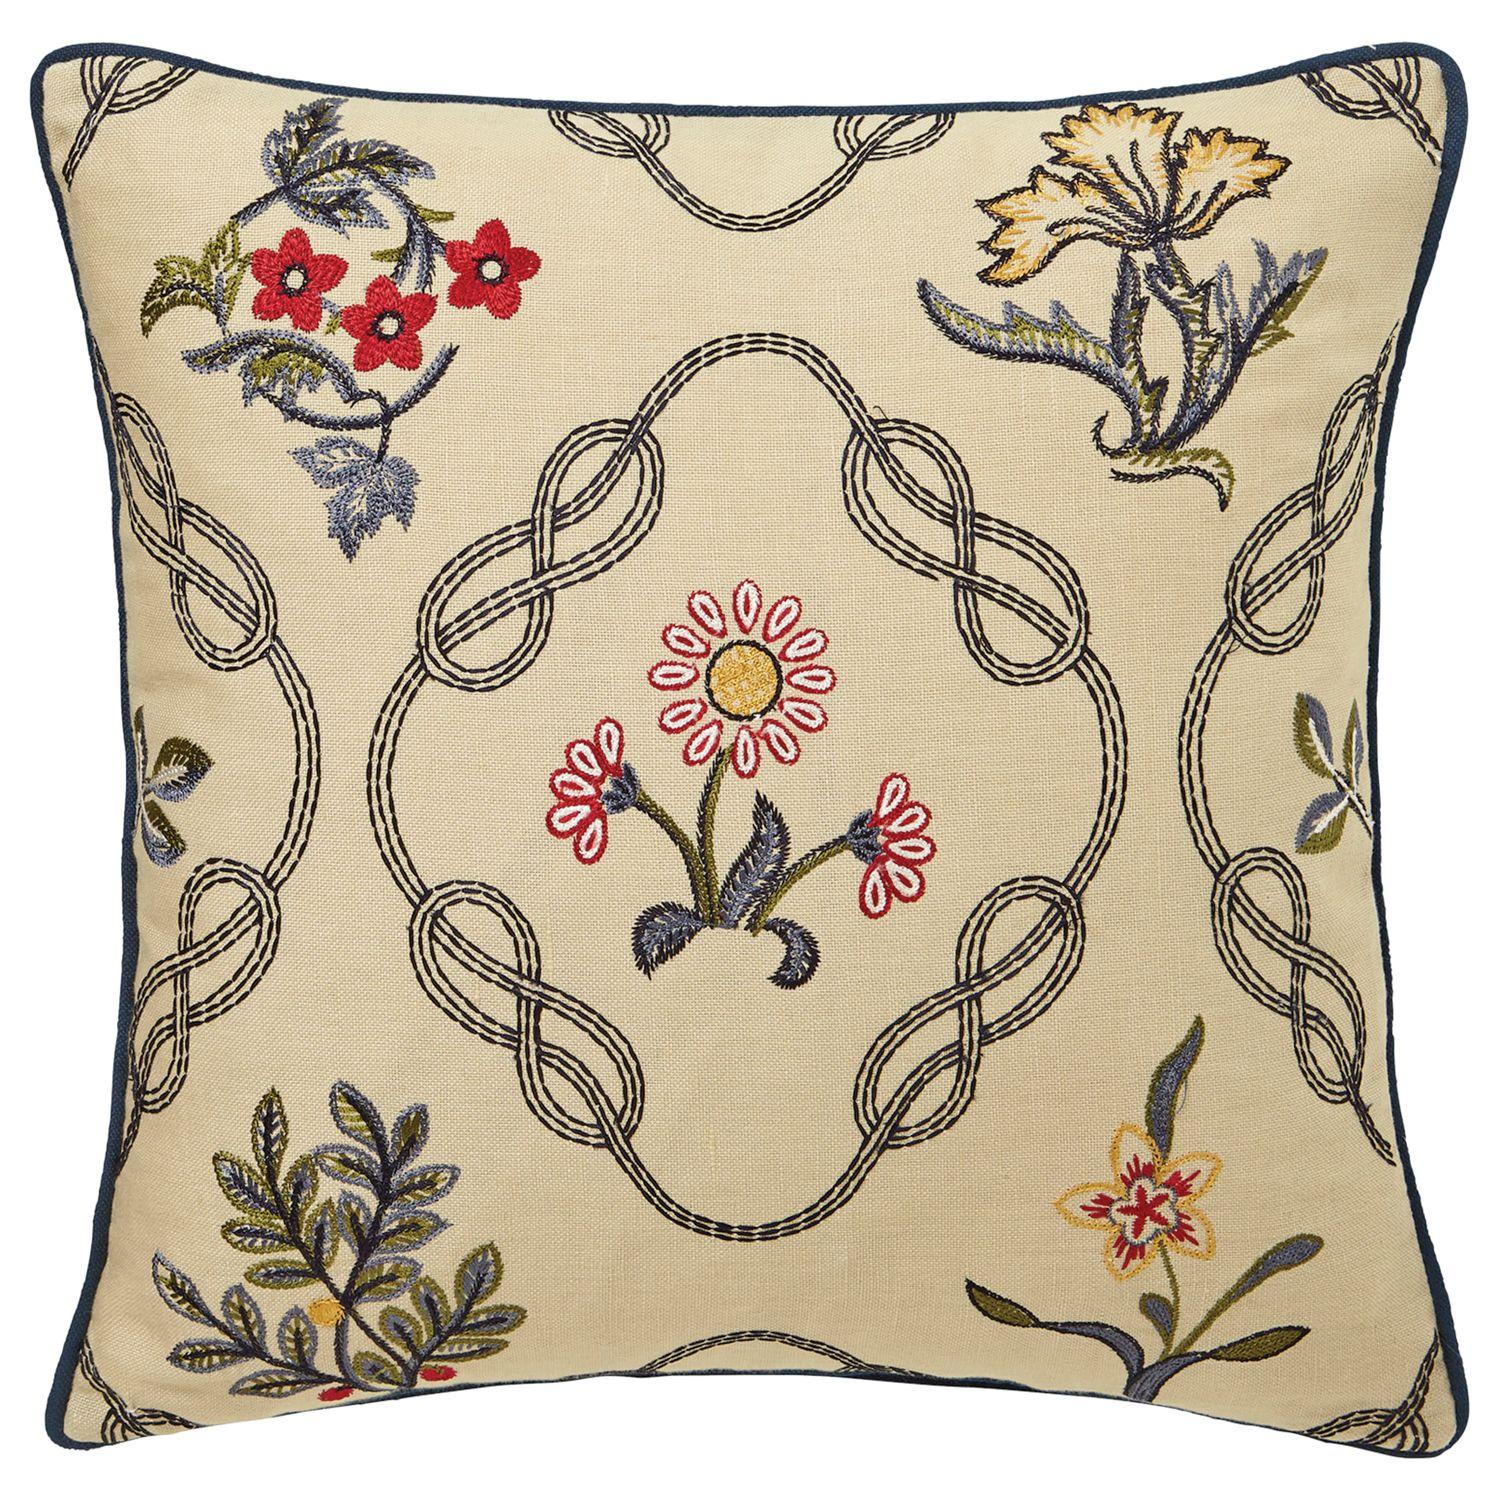 Morris & Co Morris & Co Strawberry Thief Embroidered Cushion